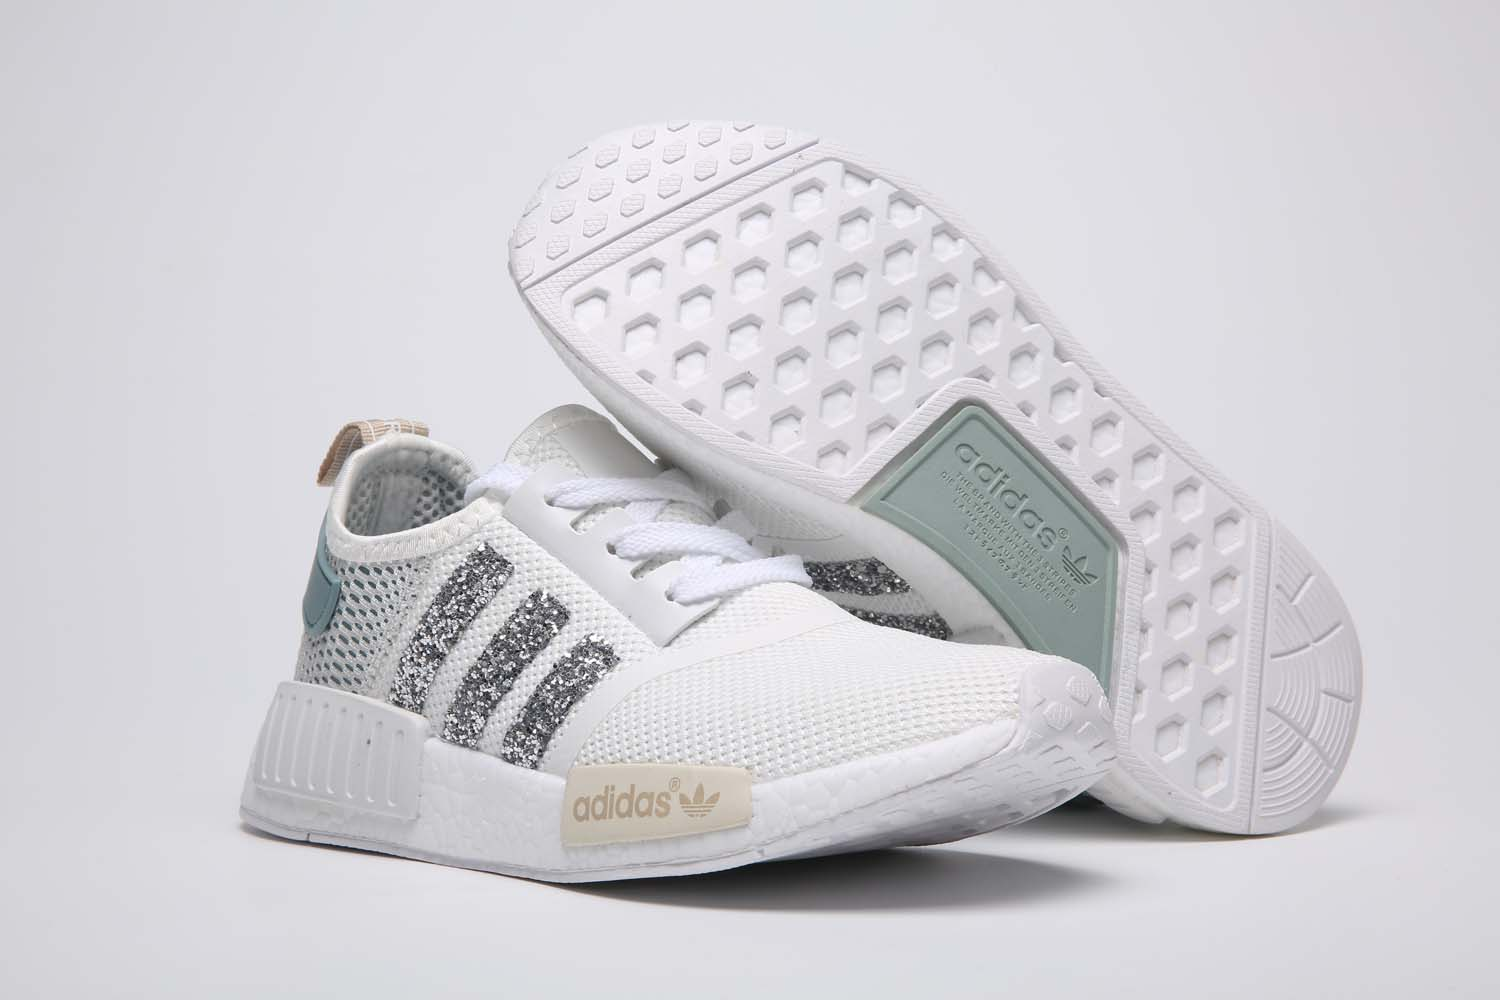 Adidas NMD white Sequins